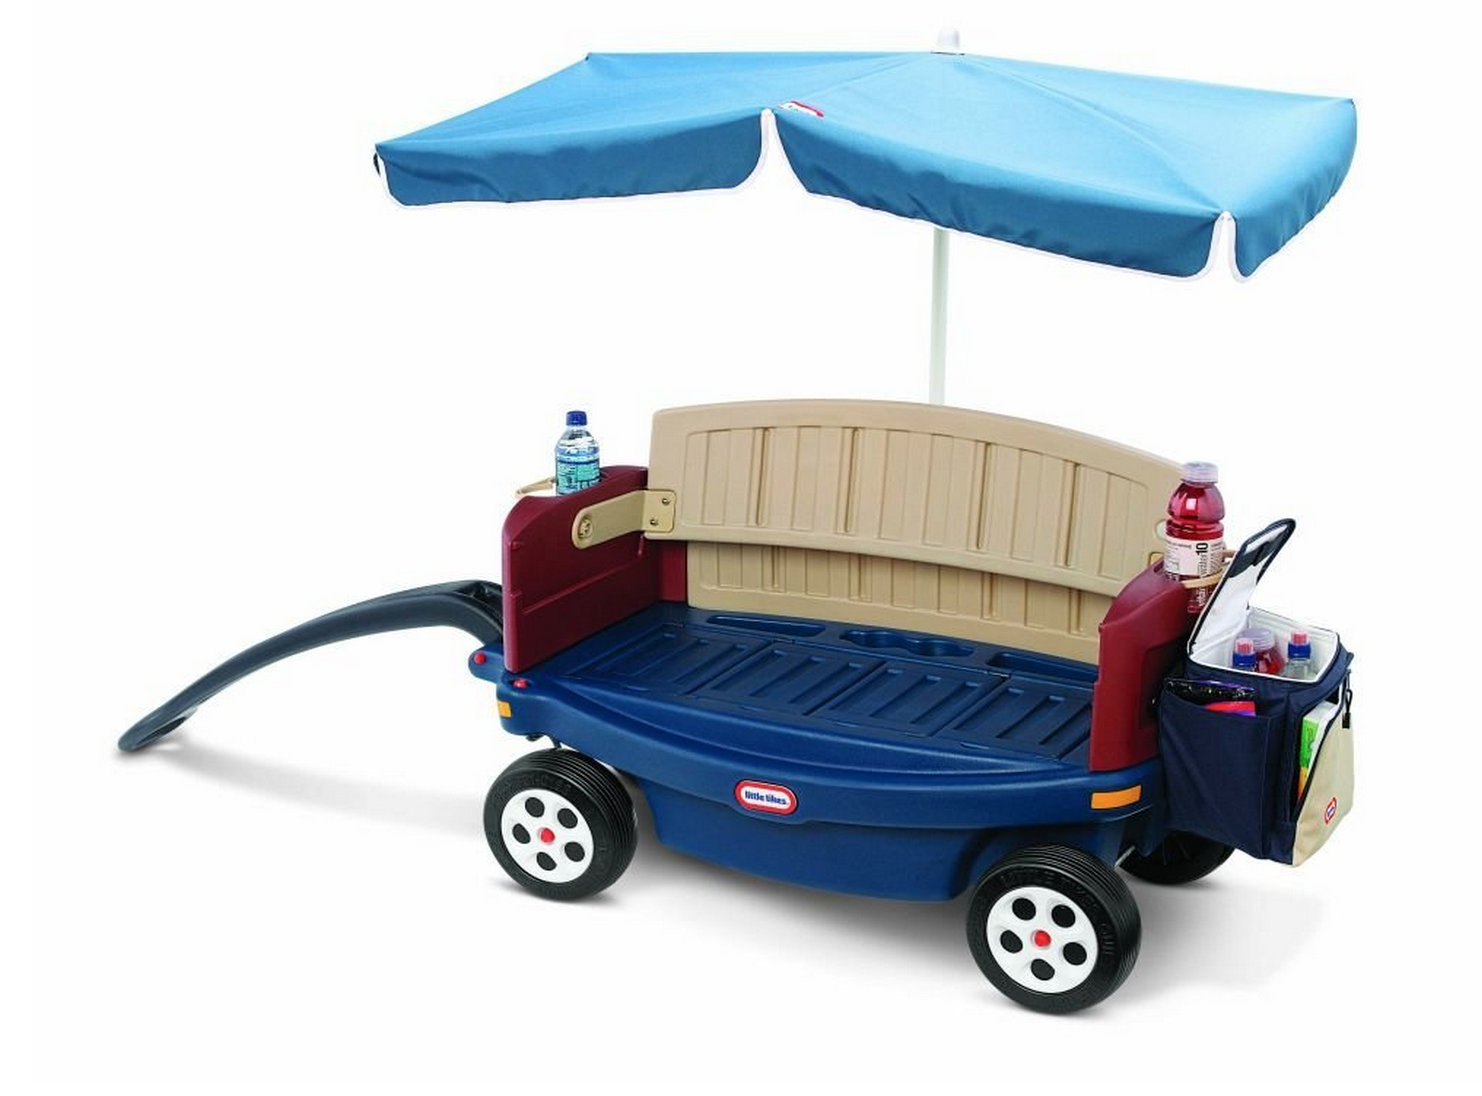 Little Tikes Deluxe Ride and Relax Wagon Only $81.20 (Reg. $144.99!) – Best Price!